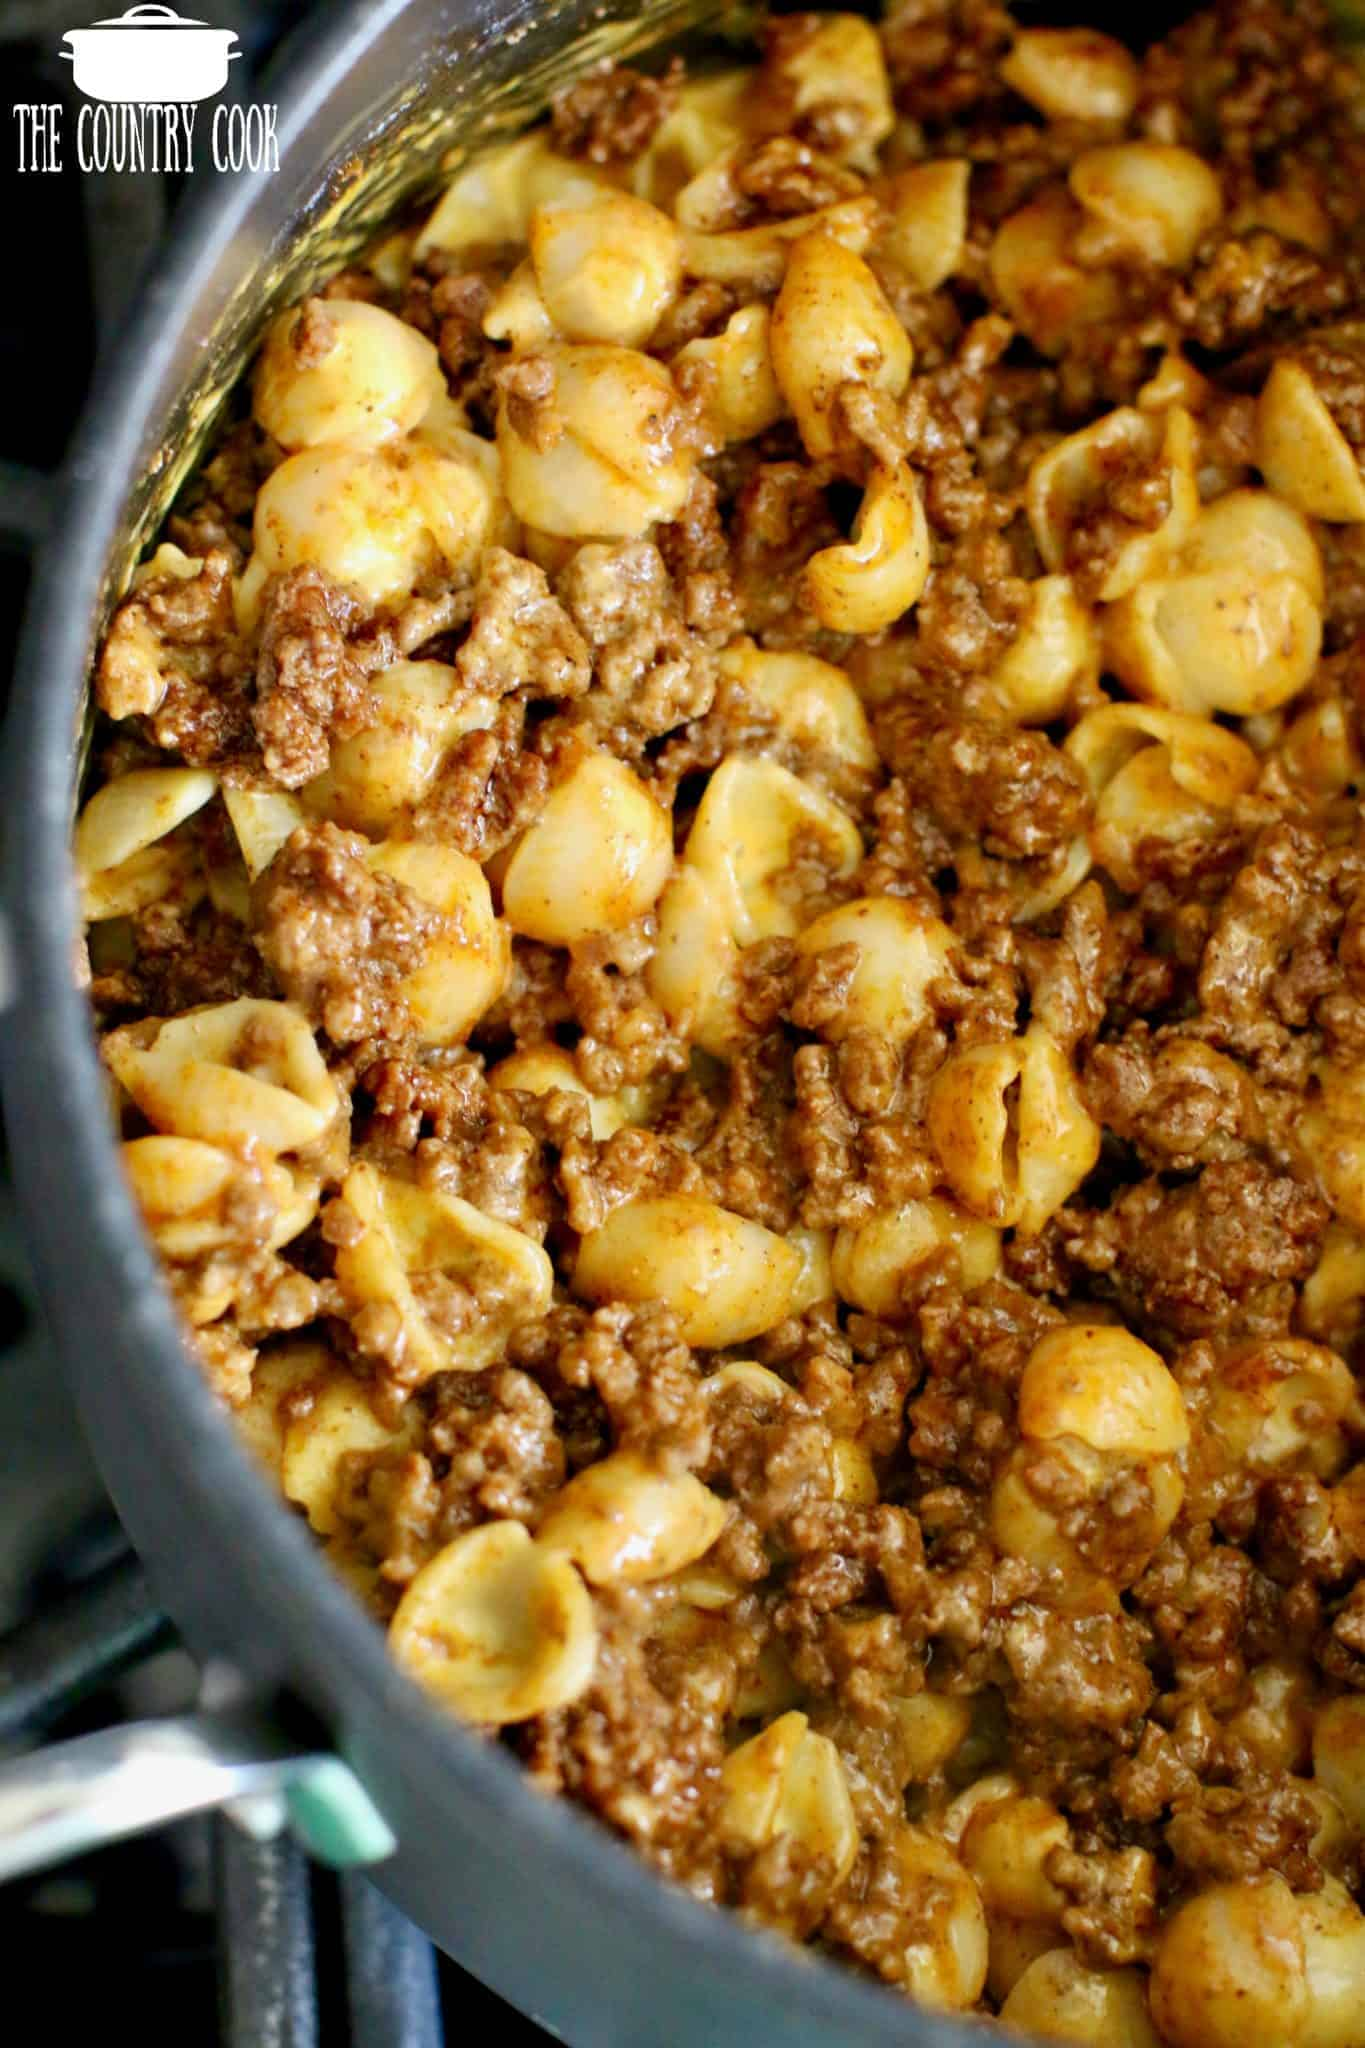 Taco Ground Beef mixed with Boxed Macaroni and Cheese in a large skillet.